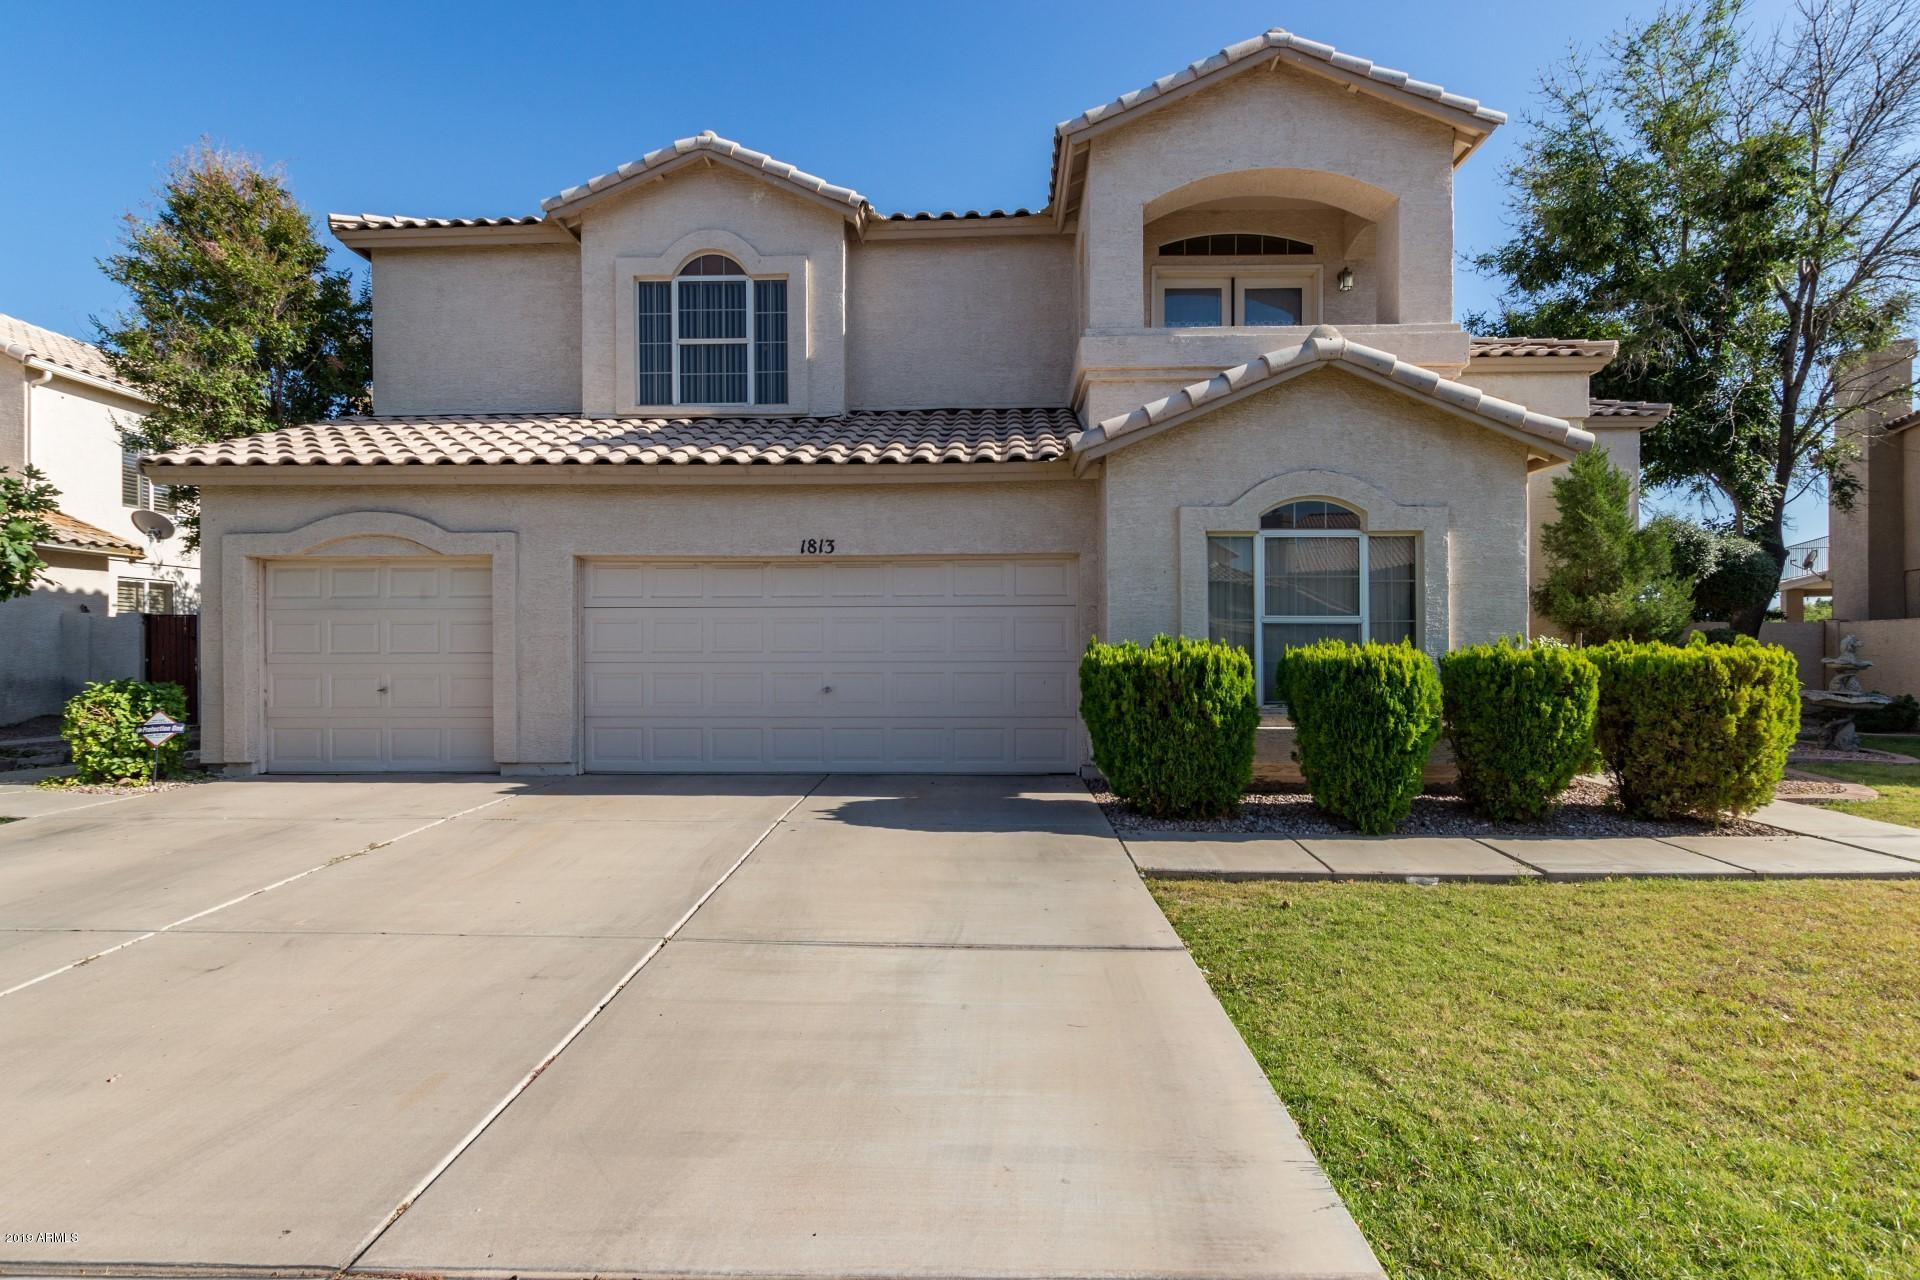 Photo of 1813 W ENCINAS Street, Gilbert, AZ 85233